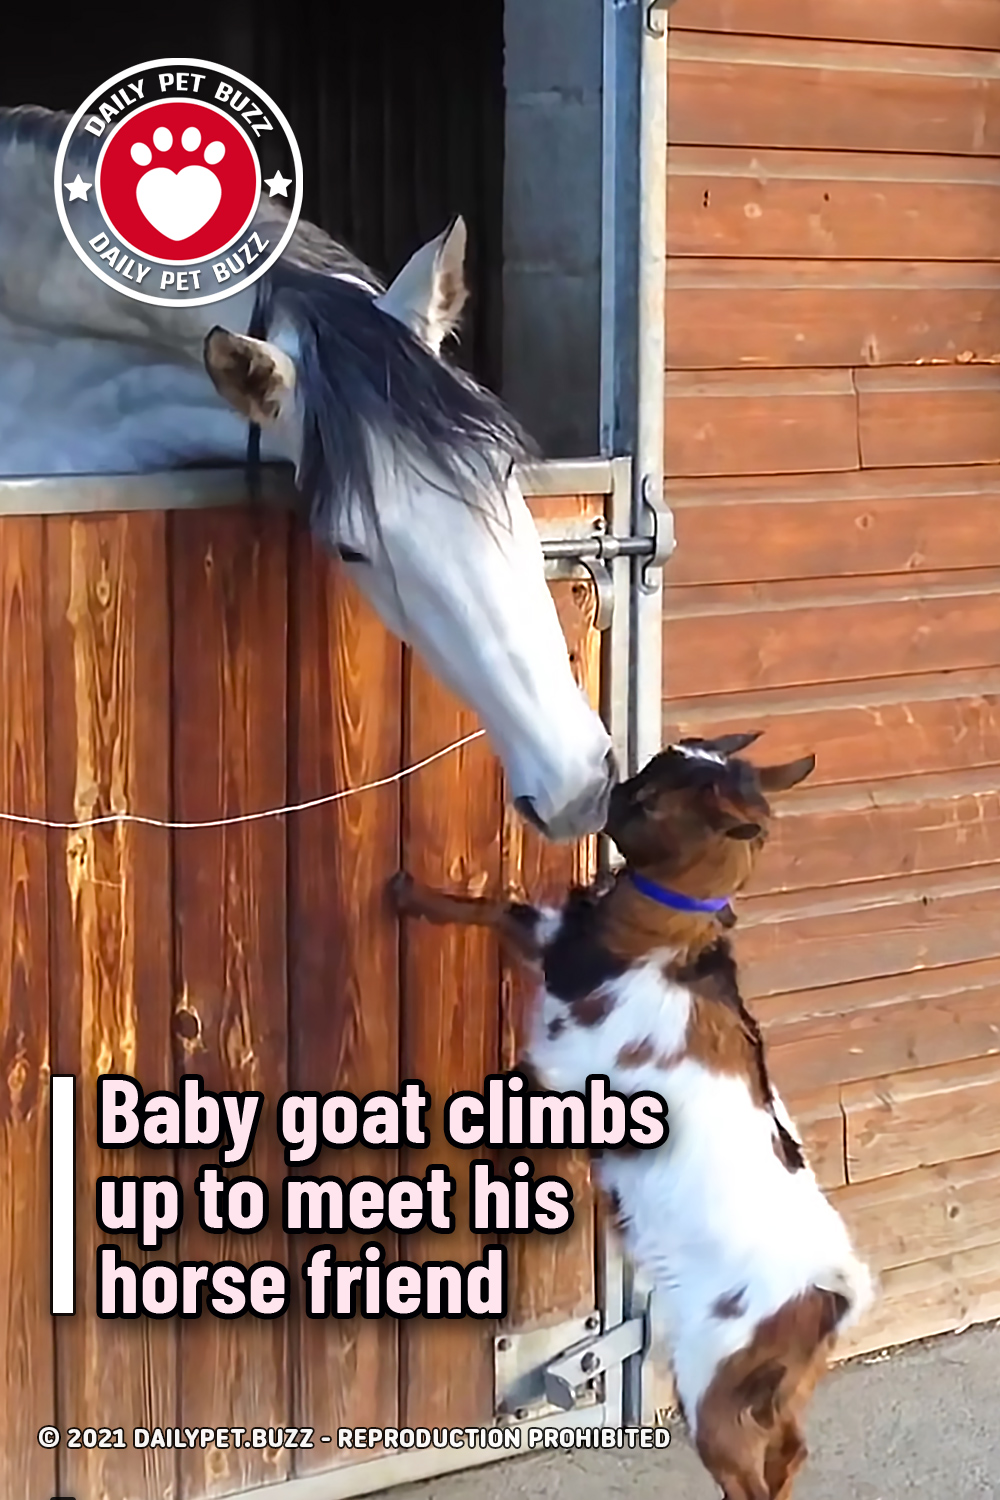 Baby goat climbs up to meet his horse friend